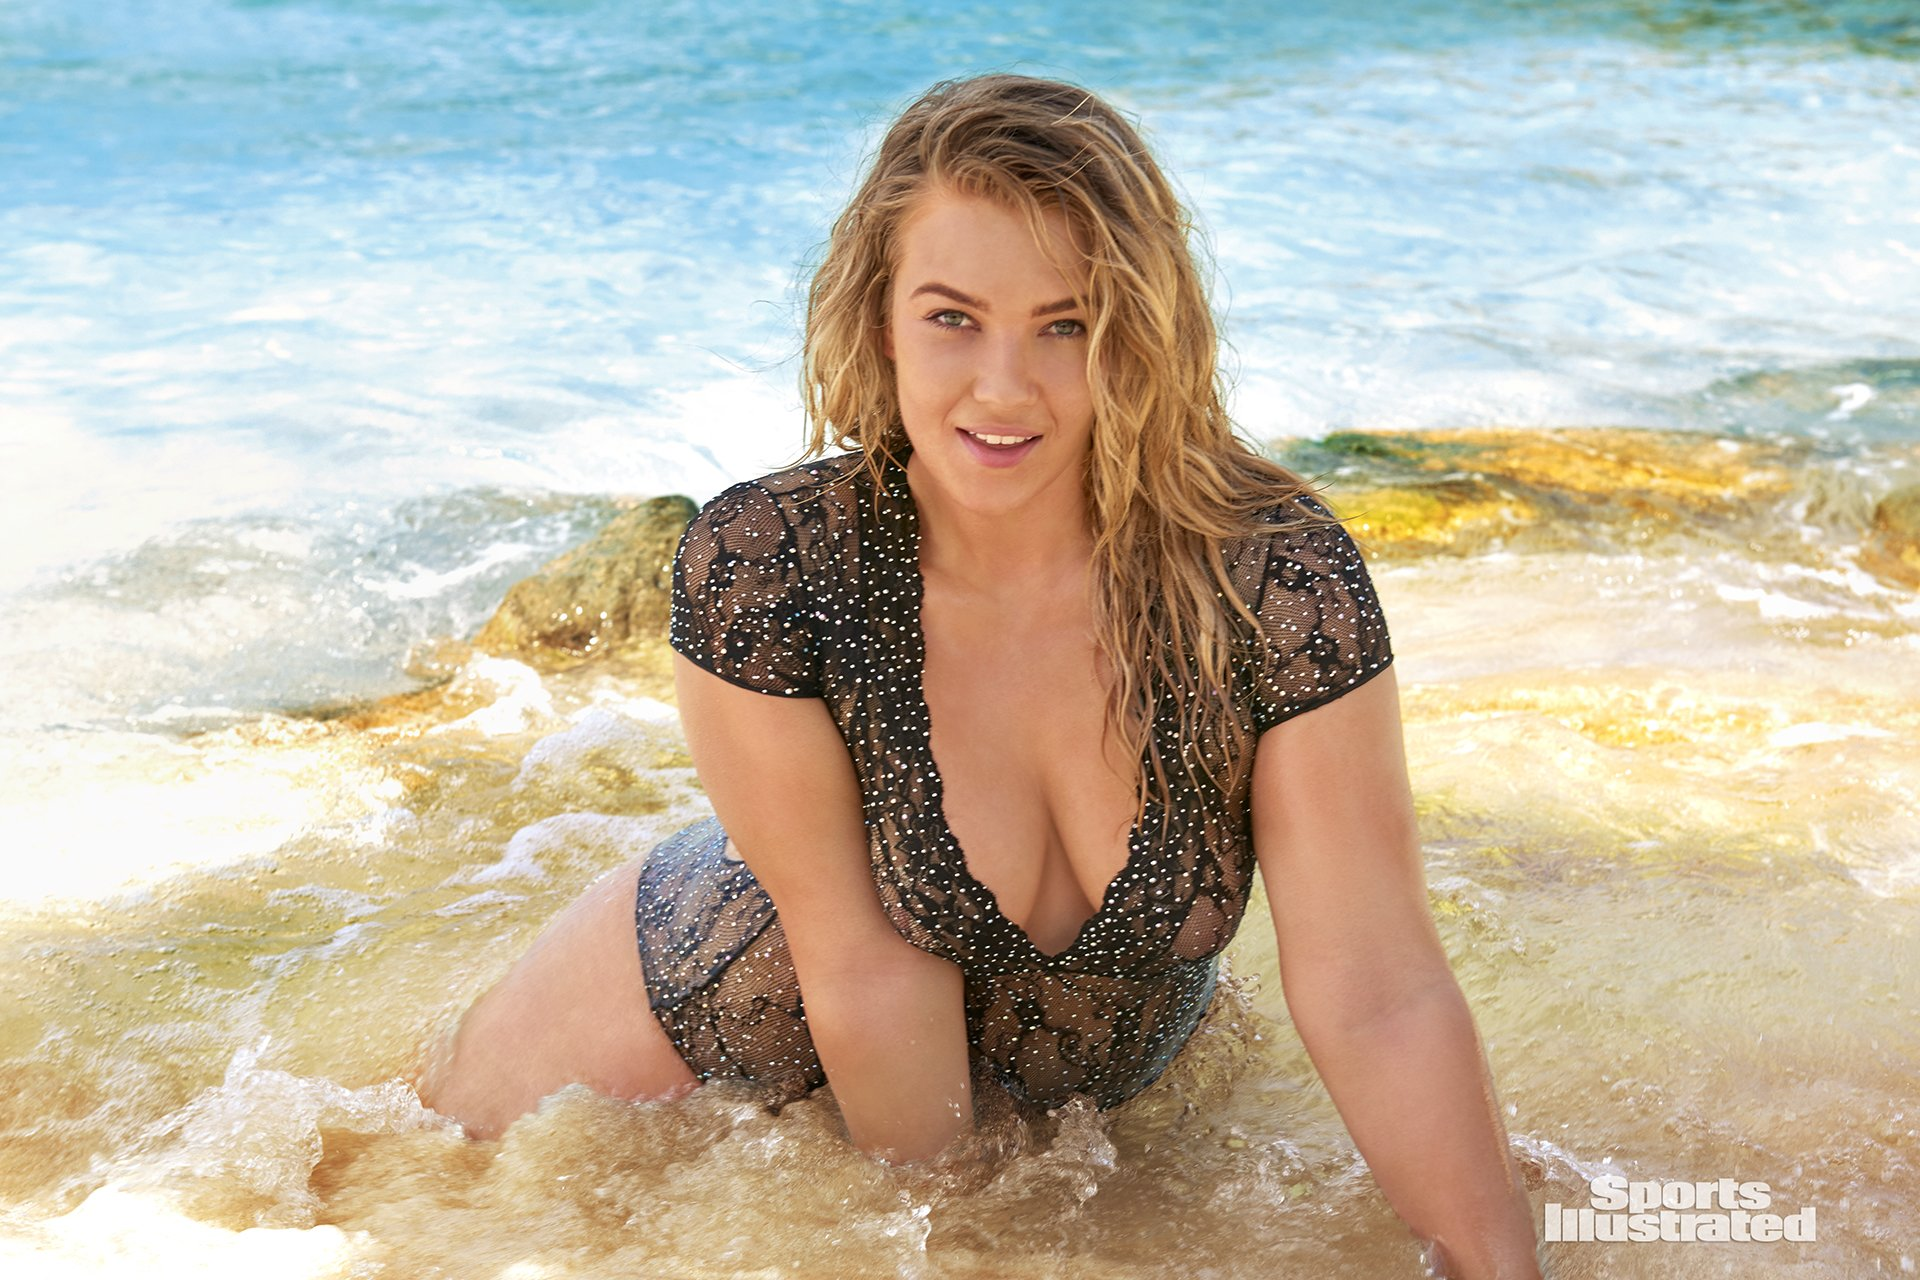 Sports Illustrated Swimsuit Issue 2018010.jpg